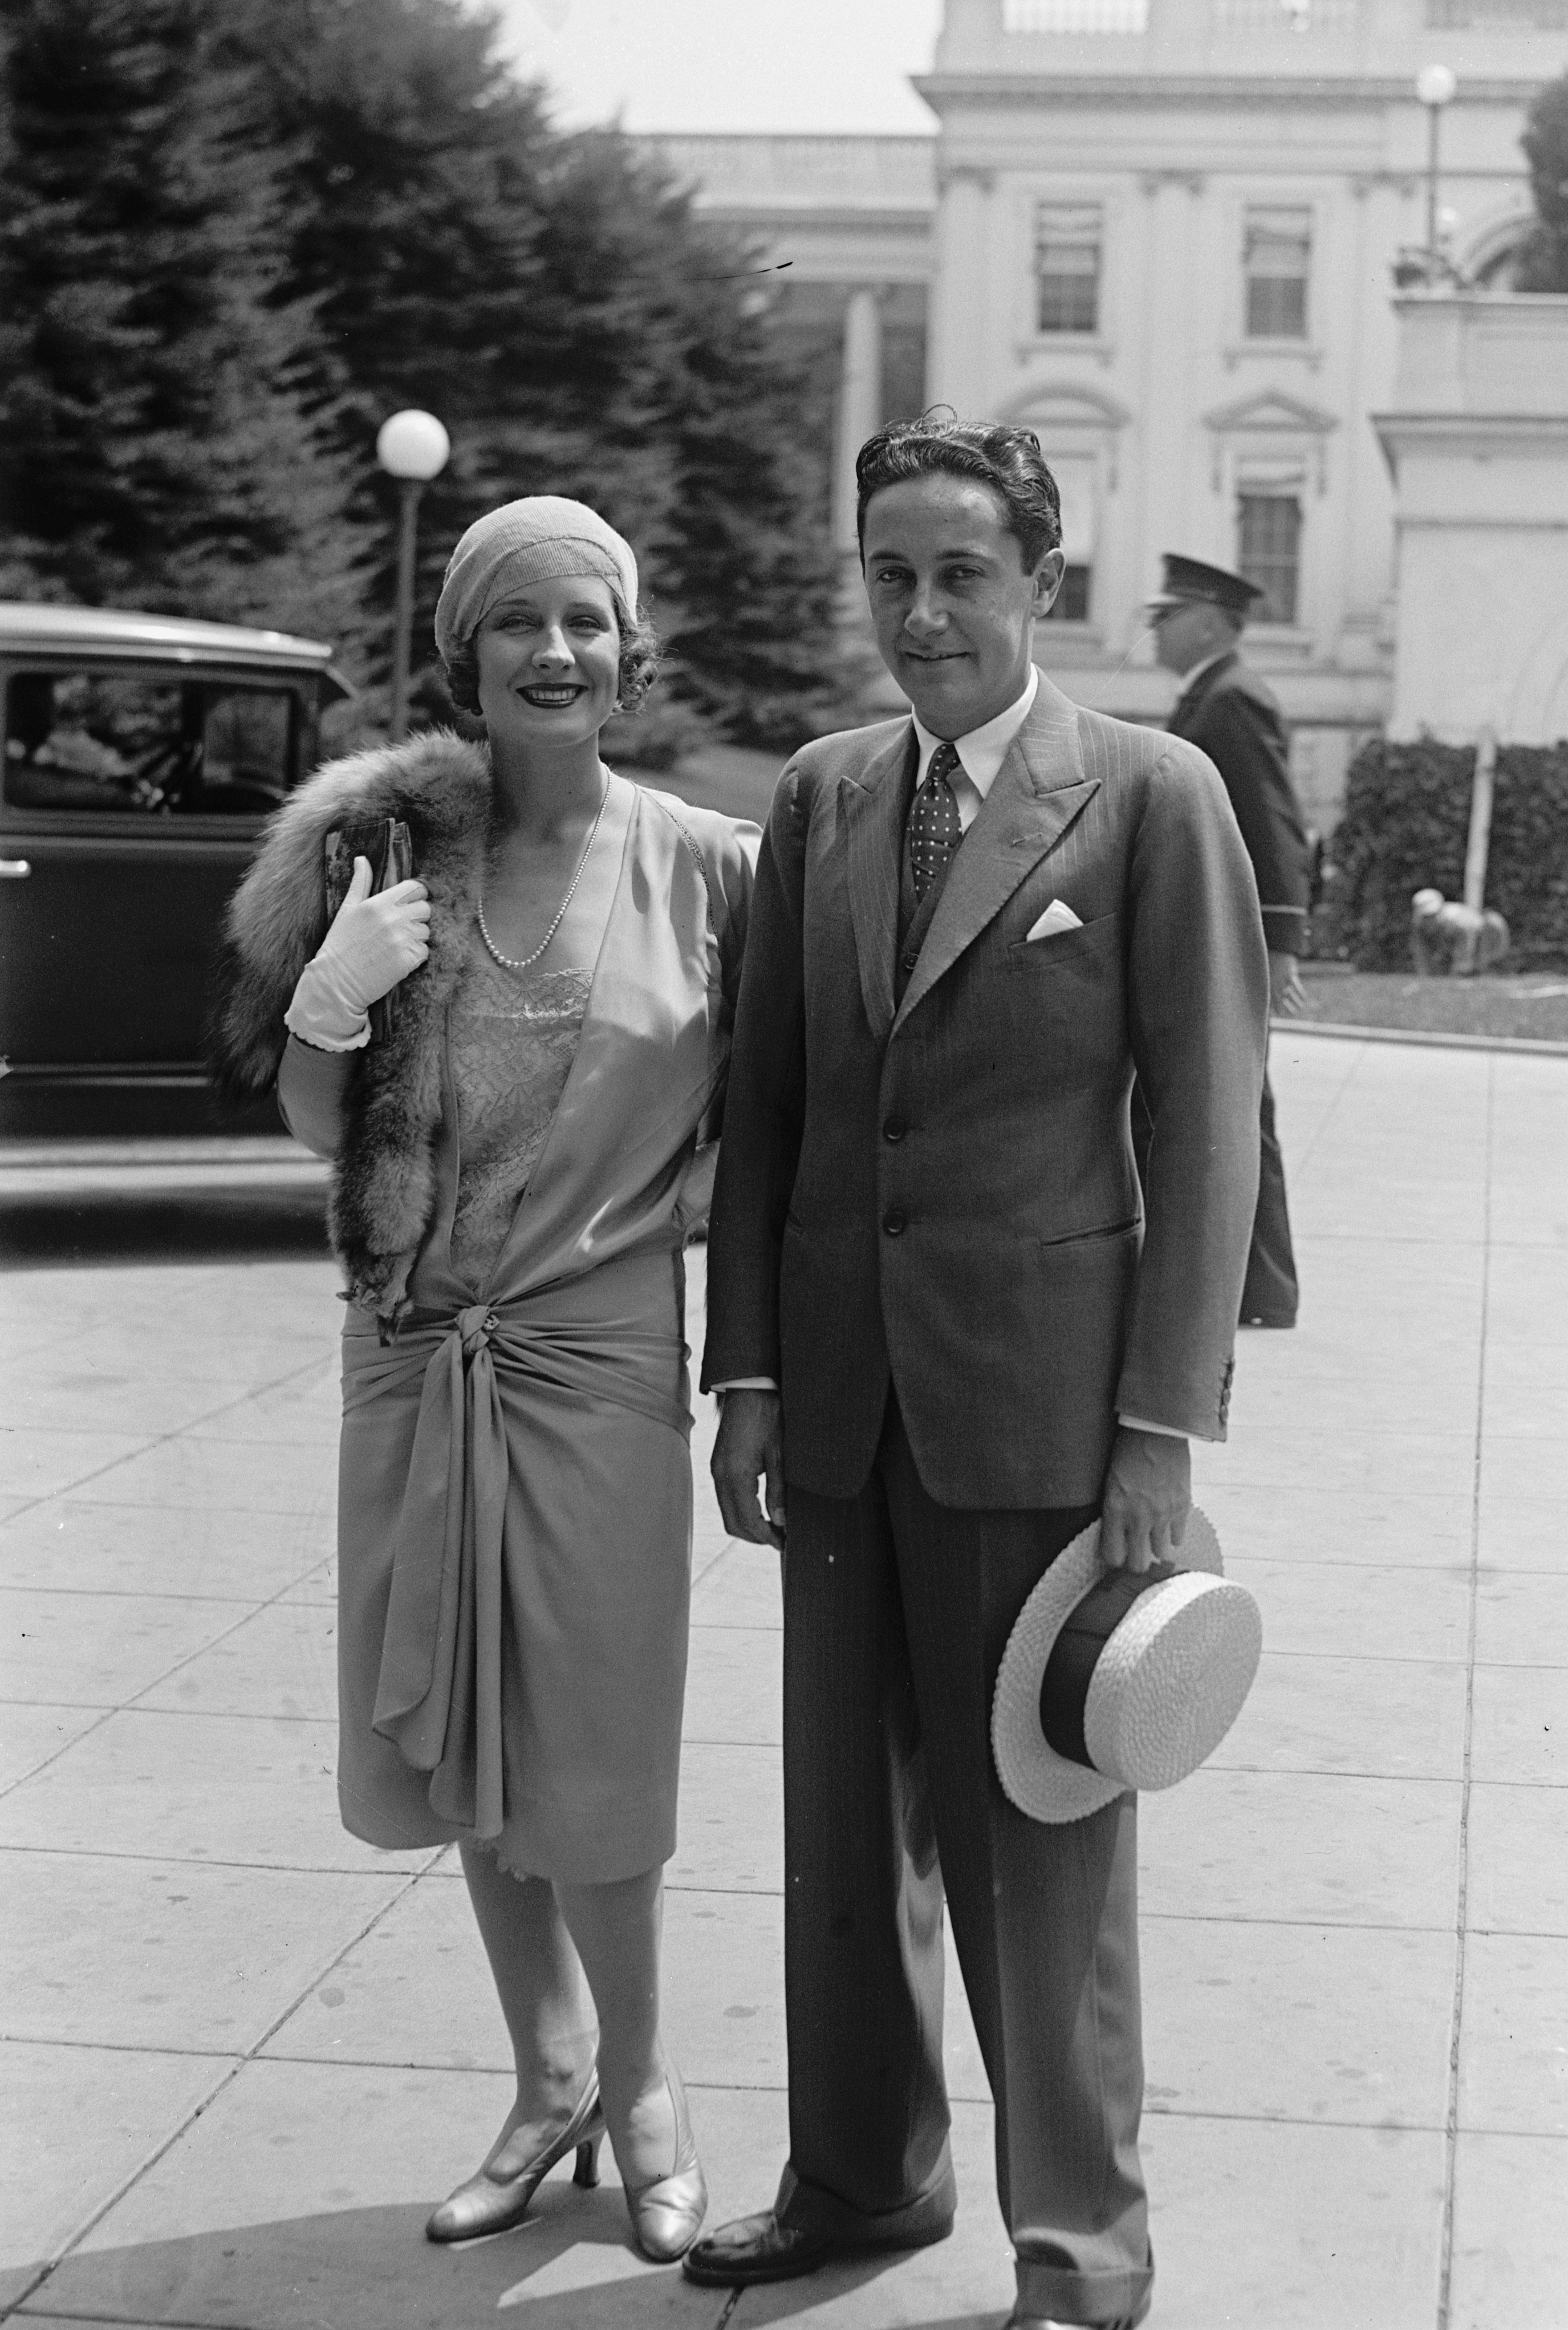 File:Norma Shearer and Irv Thalberg.png - Wikimedia Commons